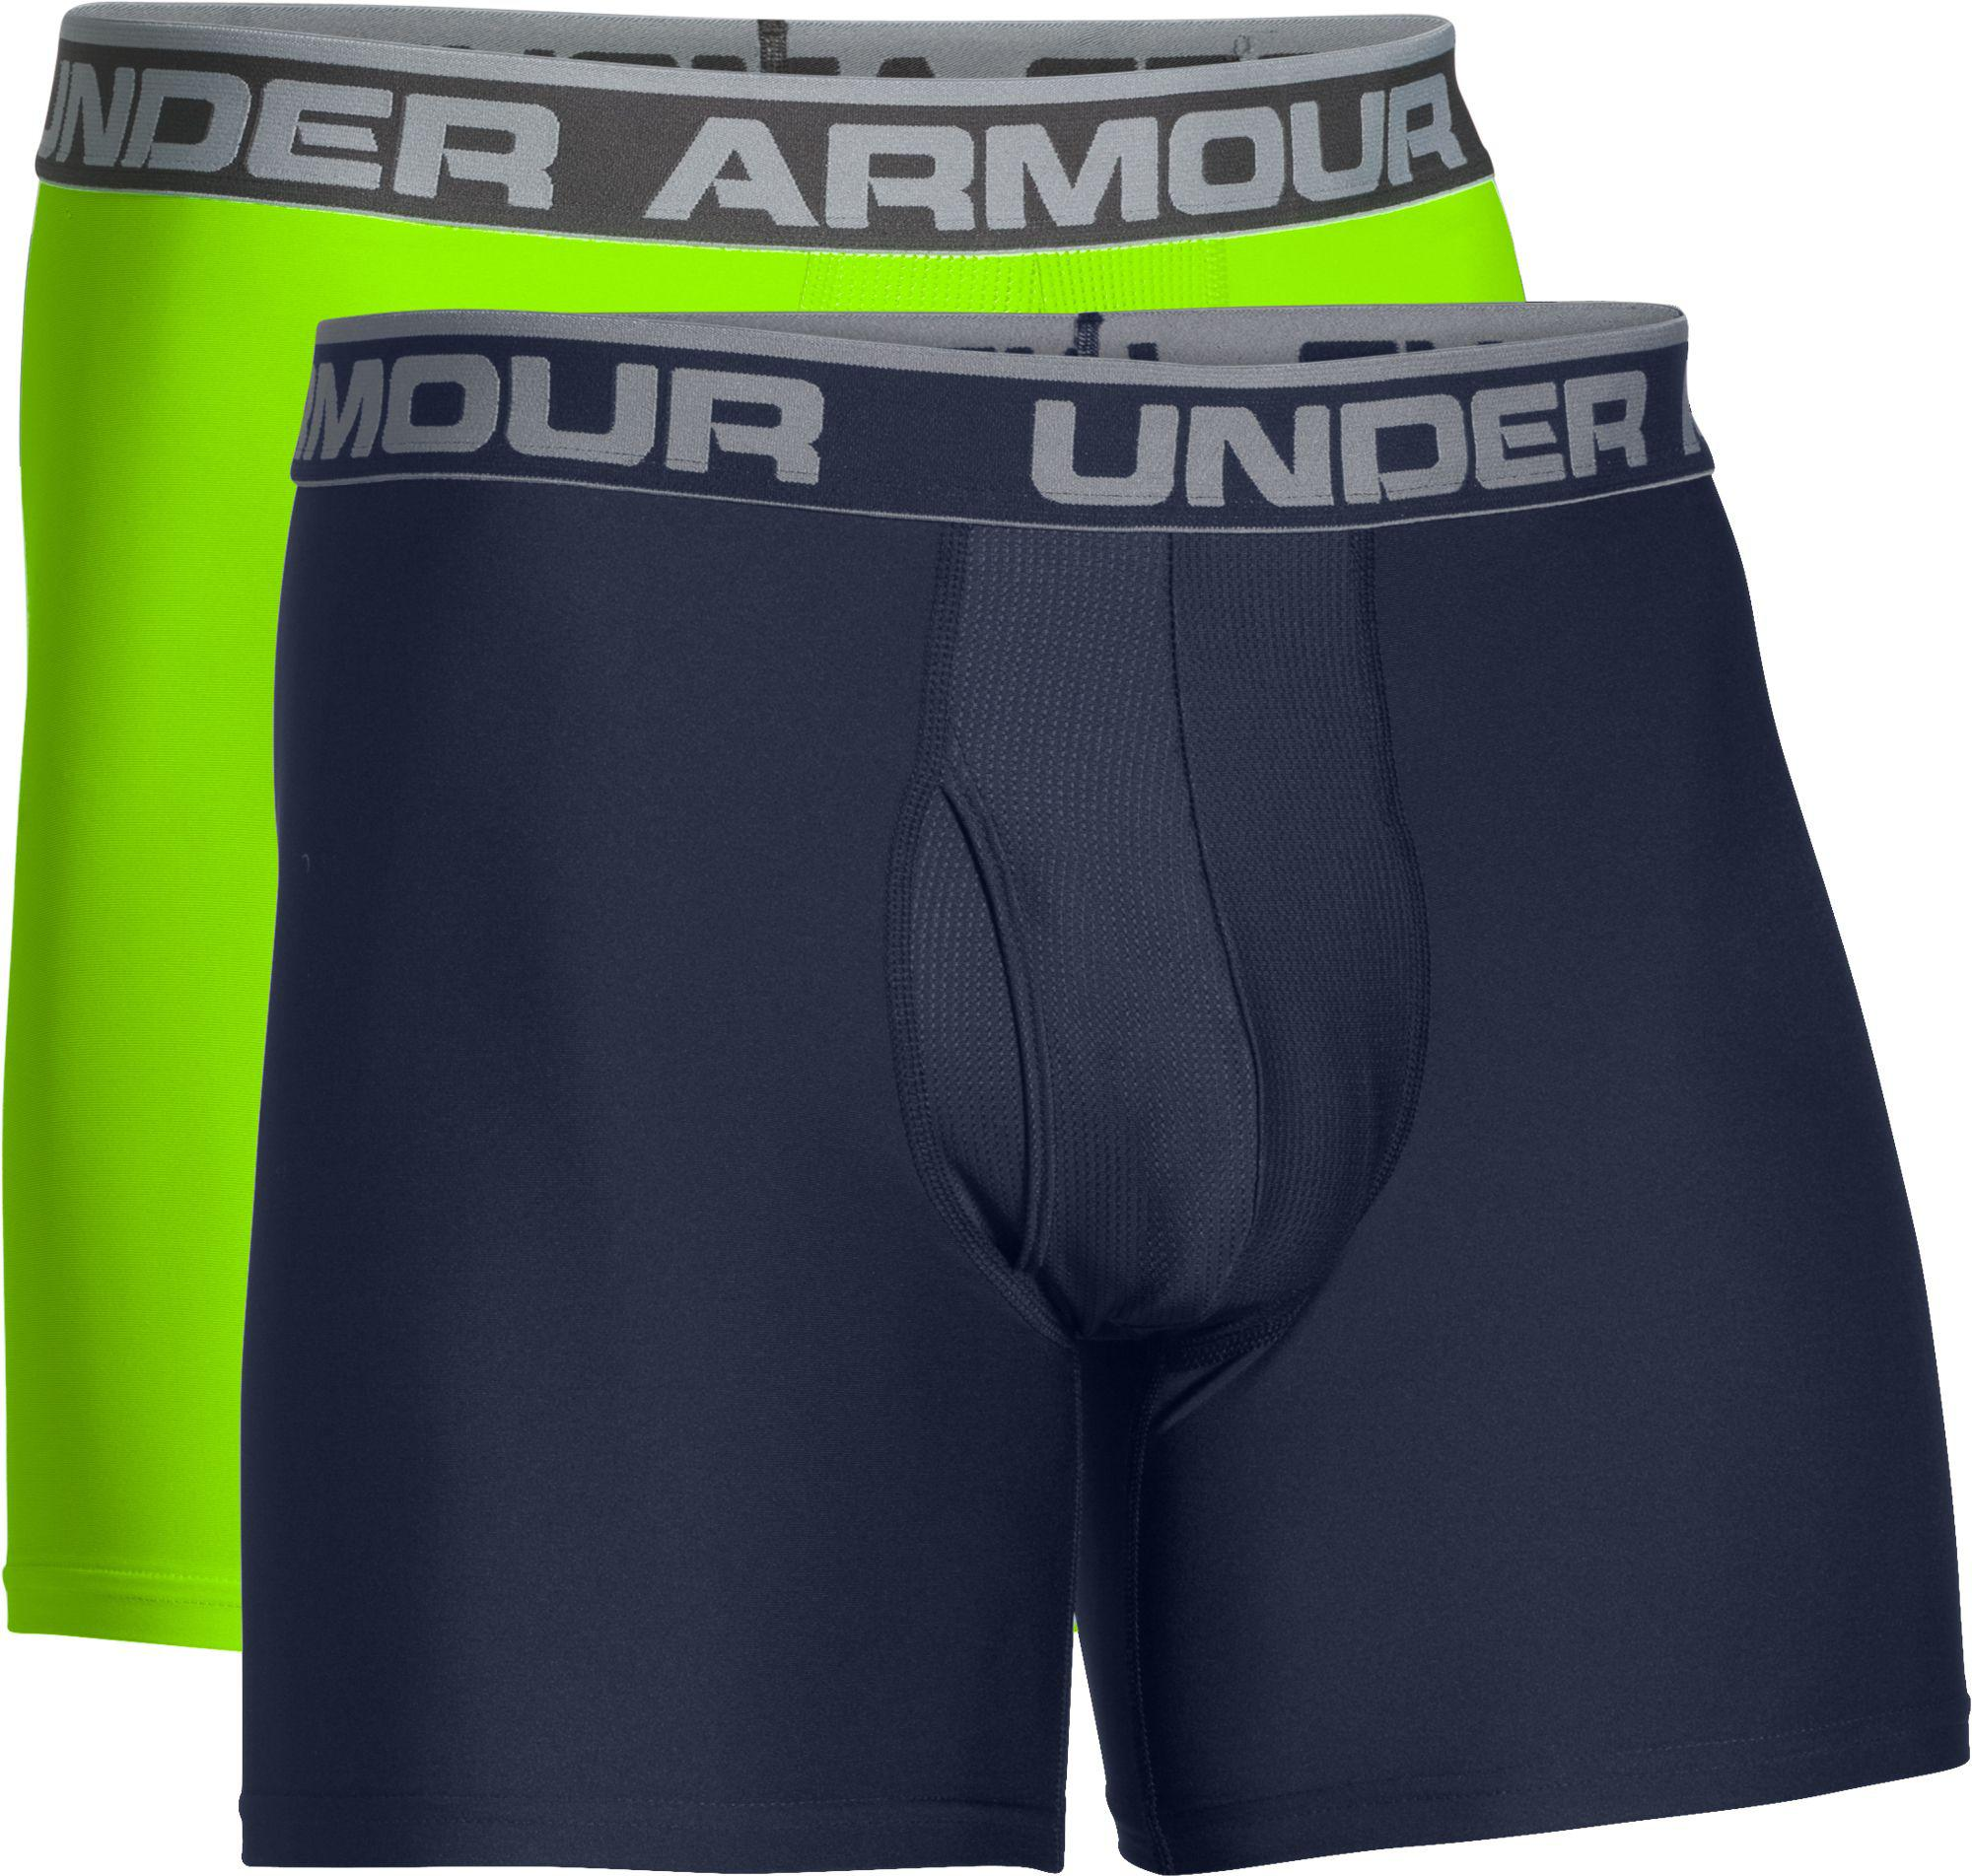 ae9b8427b34 Under Armour O Series 6'' Boxerjock Boxer Briefs 2 Pack in Blue for ...